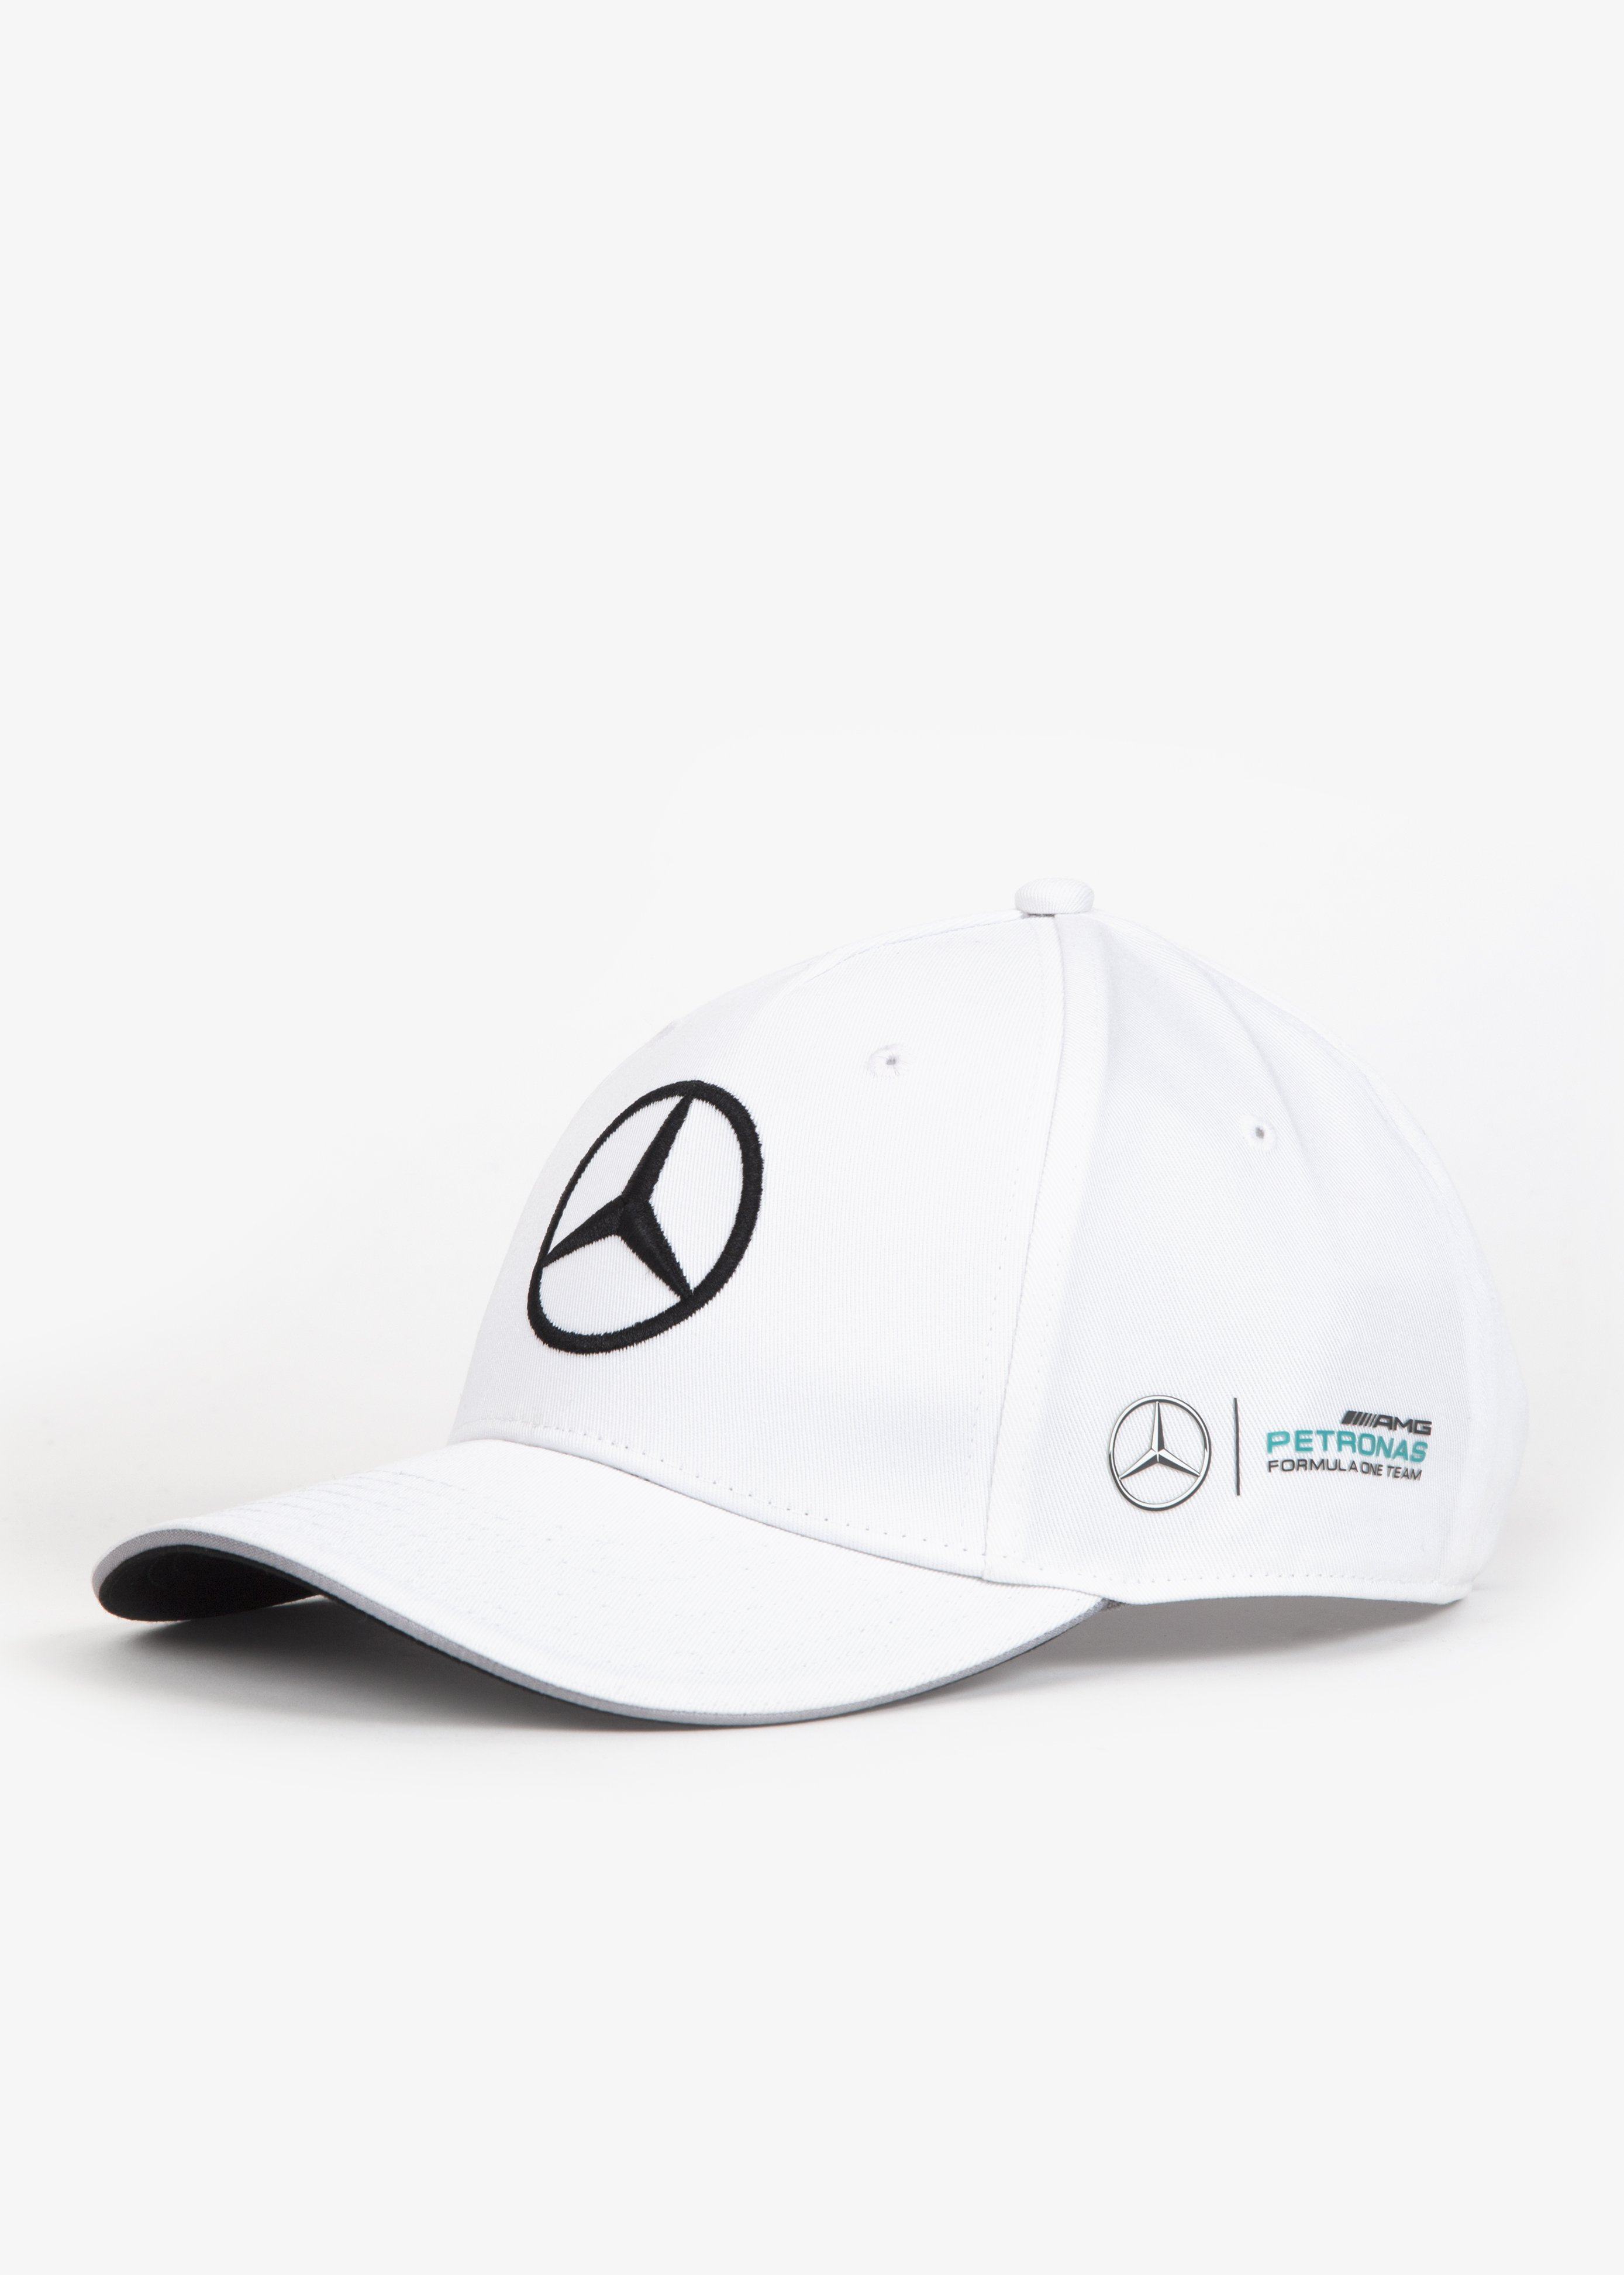 2017 Mercedes AMG Team Cap - White